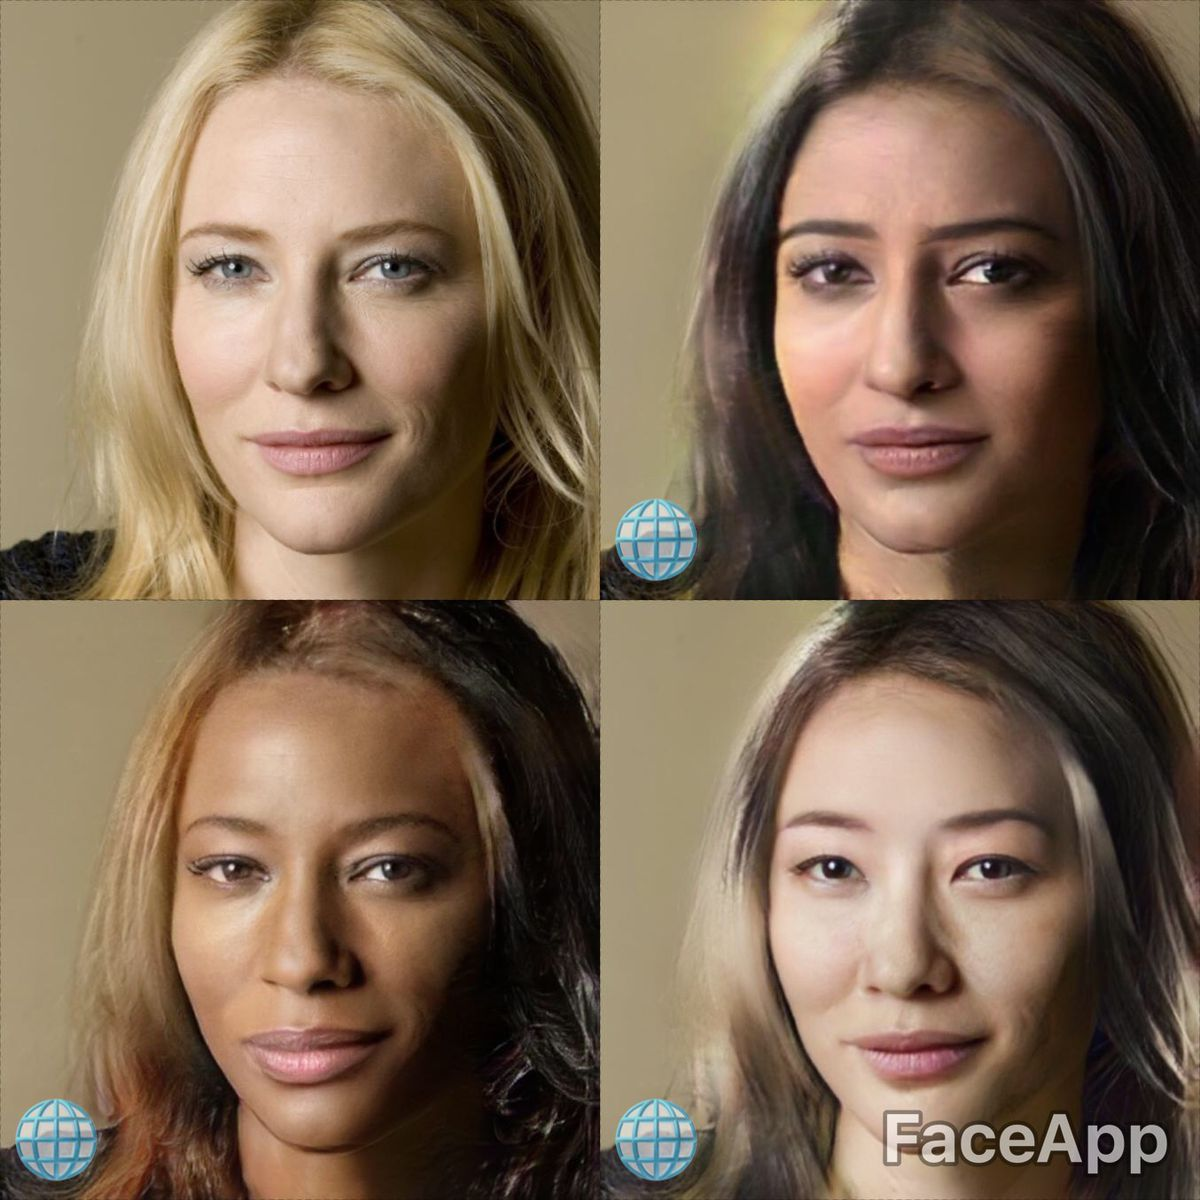 The different racial filters being used on Cate Blanchett.